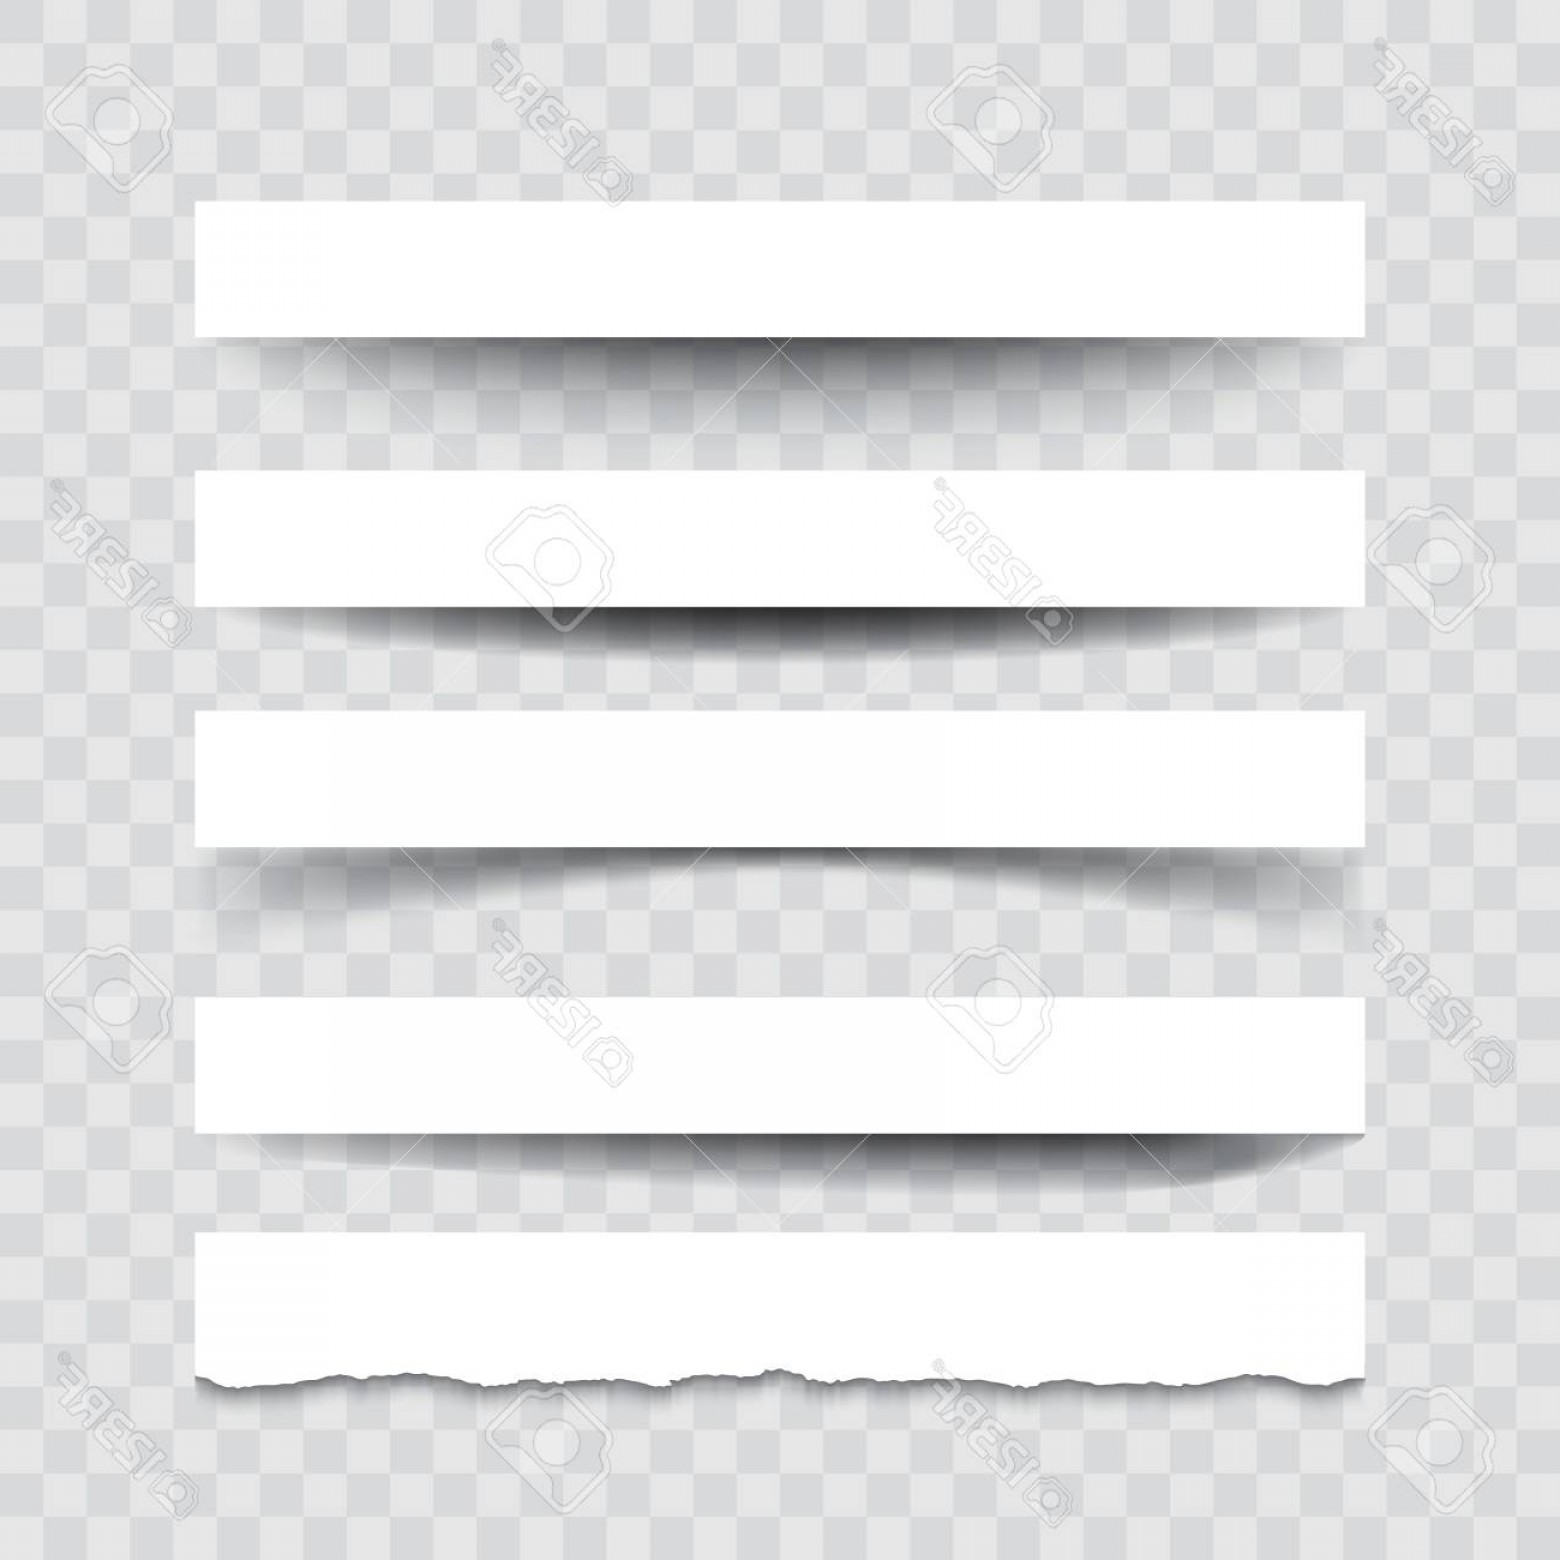 Vector Line Dividers Transparent Backgrounds: Photostock Vector Set Of Vector Dividers Isolated On Transparent Background